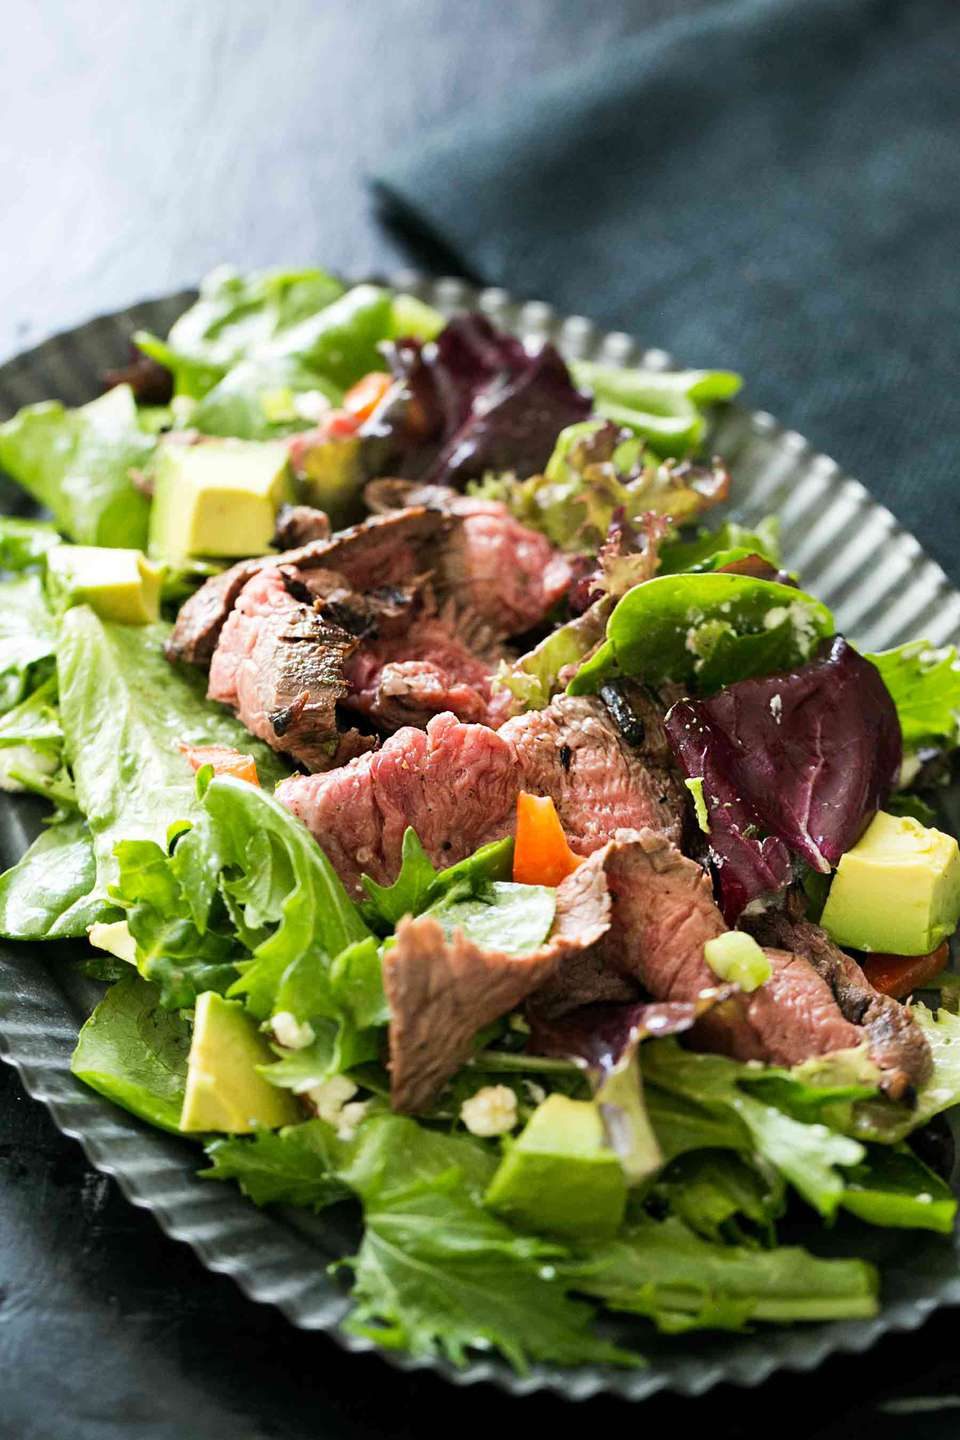 Steak Salad with pan-seared flank steak on a bed of greens and tossed with a lemon vinaigrette